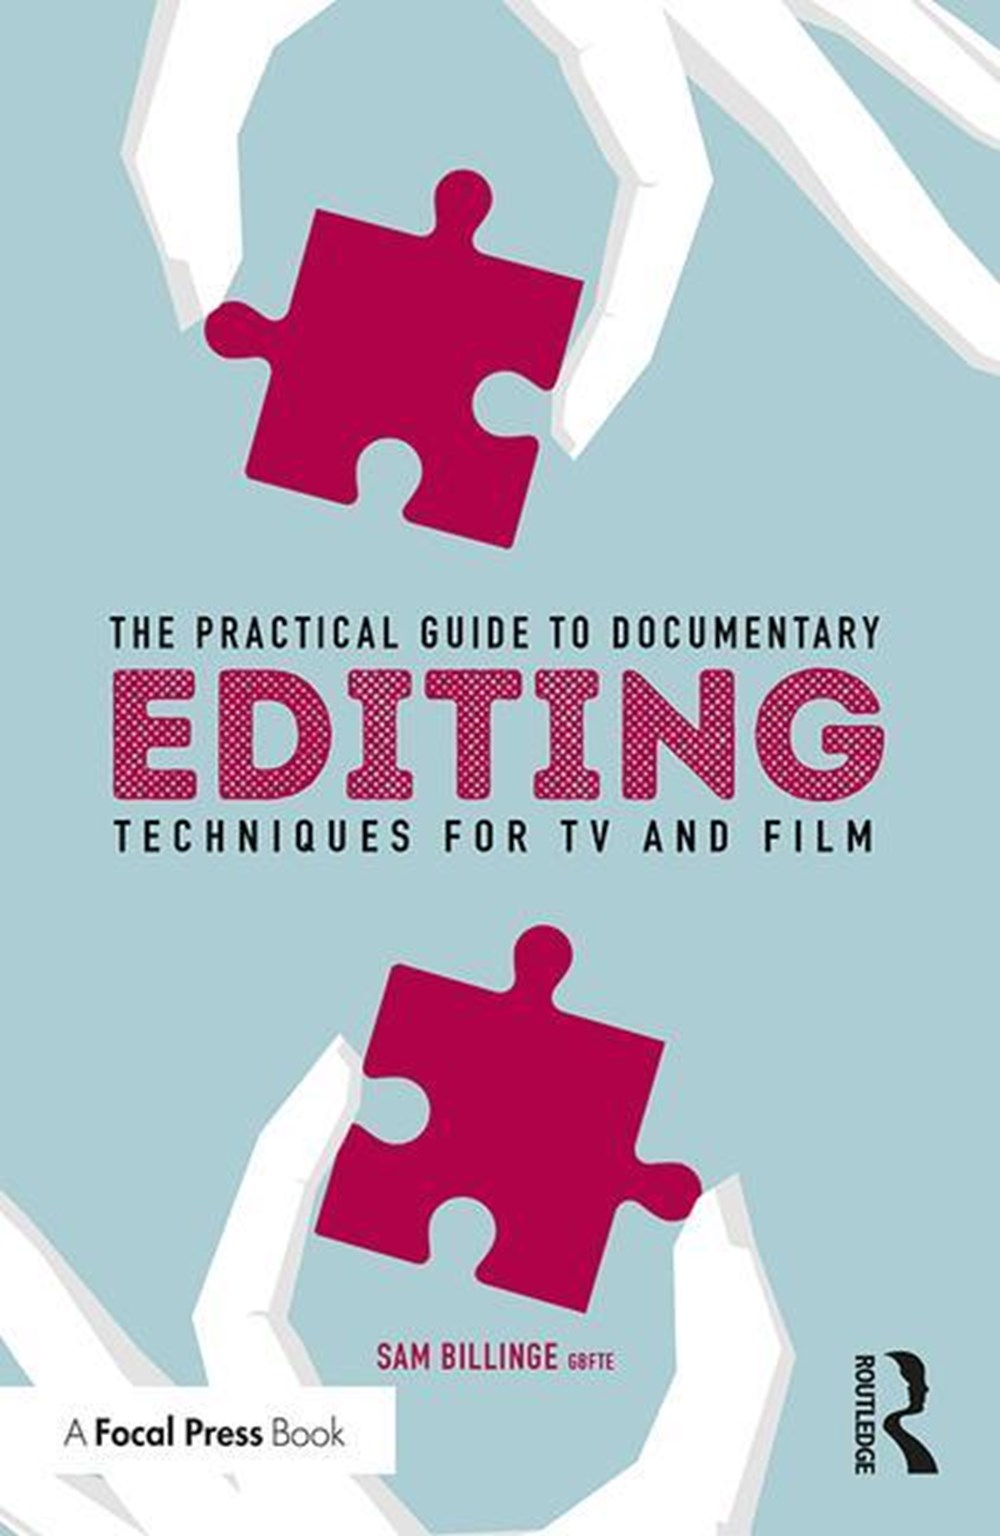 Practical Guide to Documentary Editing Techniques for TV and Film